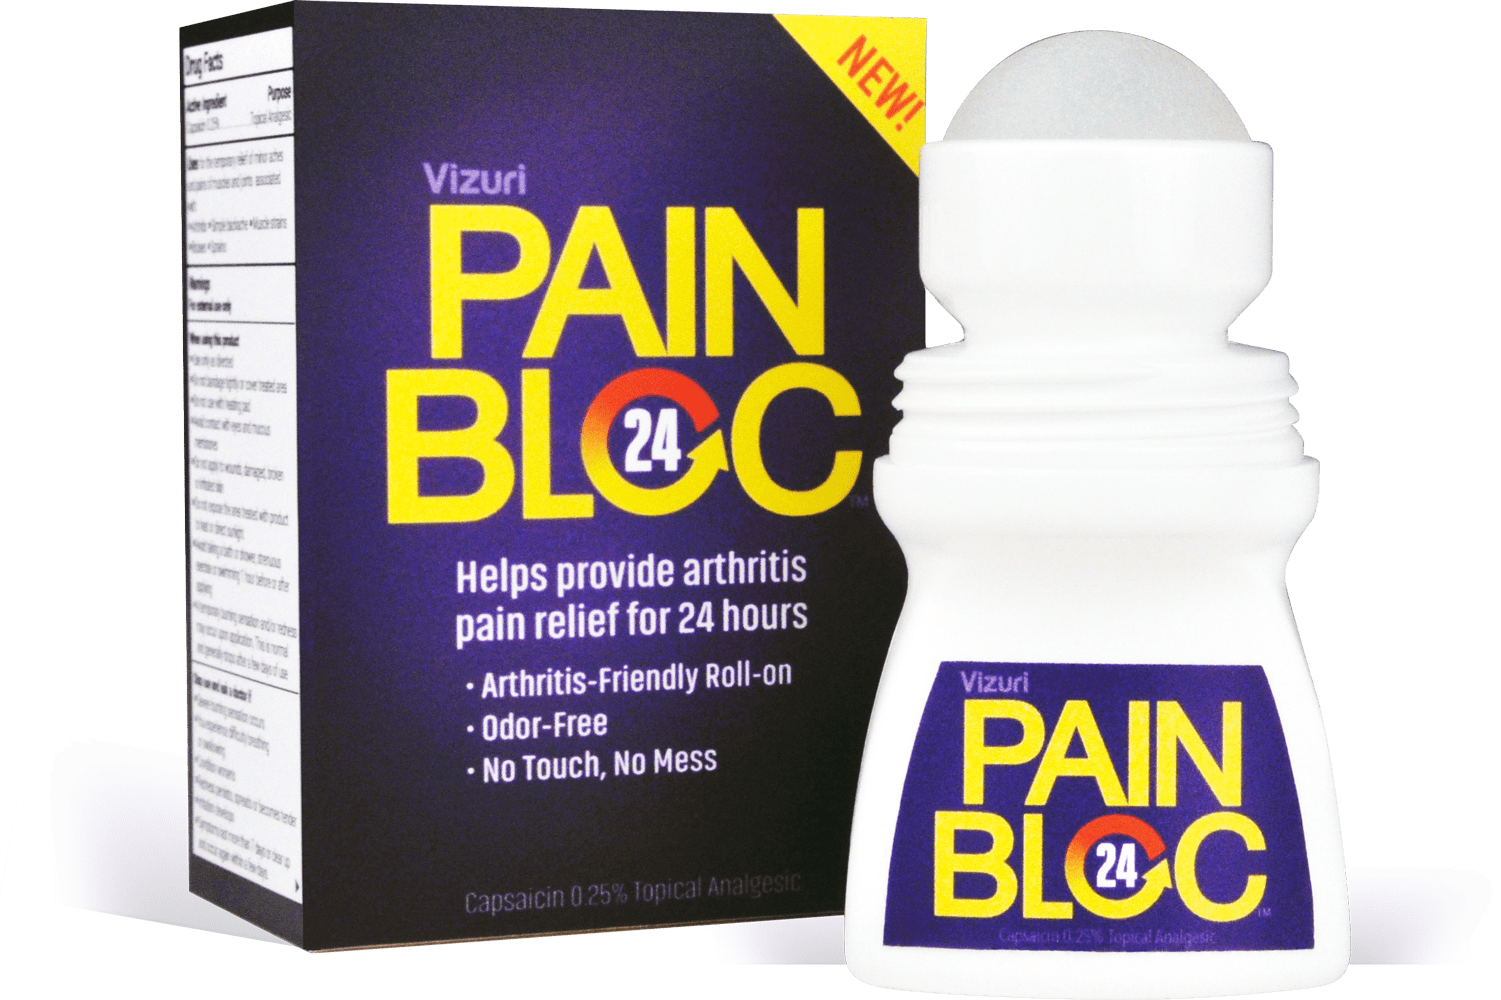 Welcome to PainBloc24®